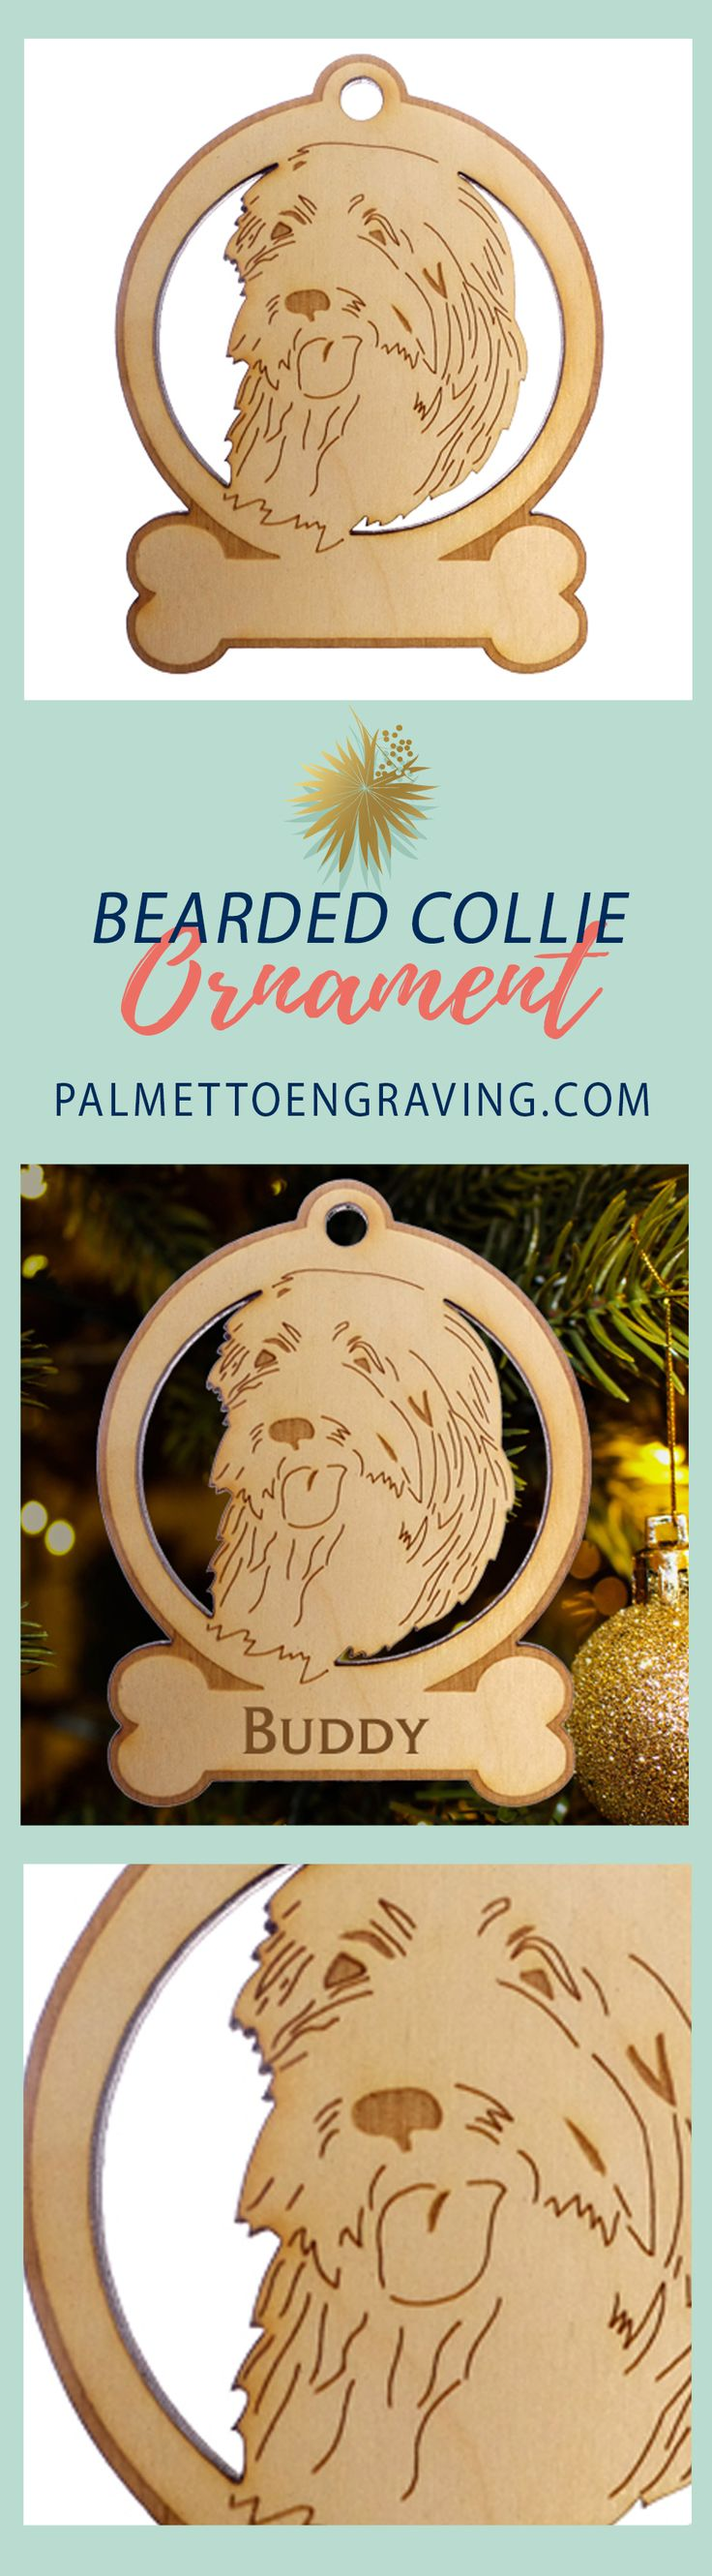 PIN NOW - VIEW LATER Beautifully Handcrafted Bearded Collie Ornament! FREE Personalization!